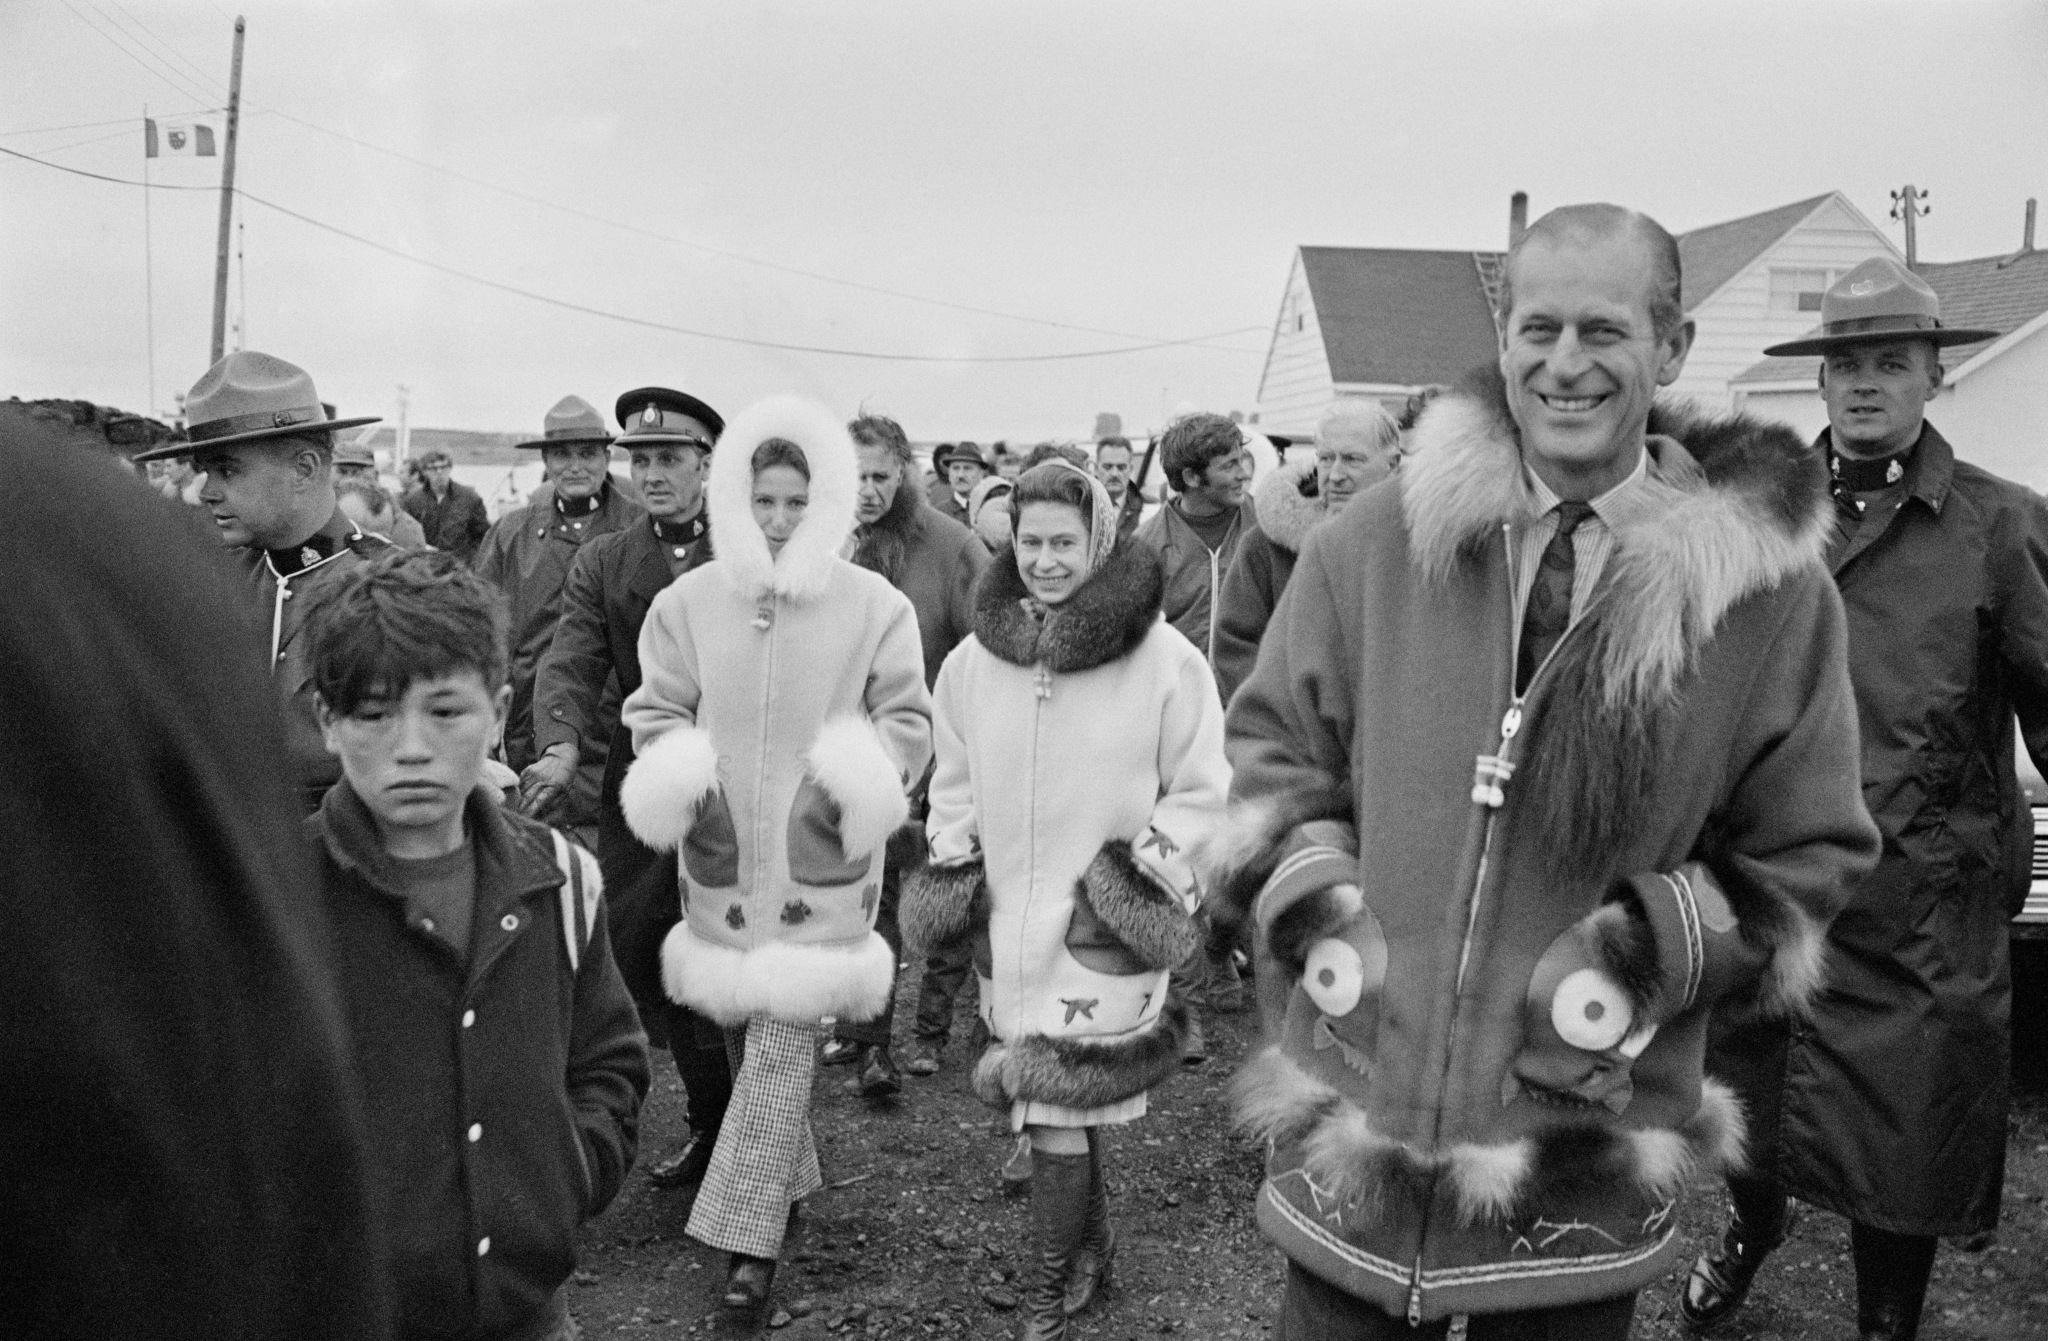 Queen Elizabeth II with Prince Philip and Princess Anne in Tuktoyaktuk, in the Northwest Territories of Canada, July 1970.